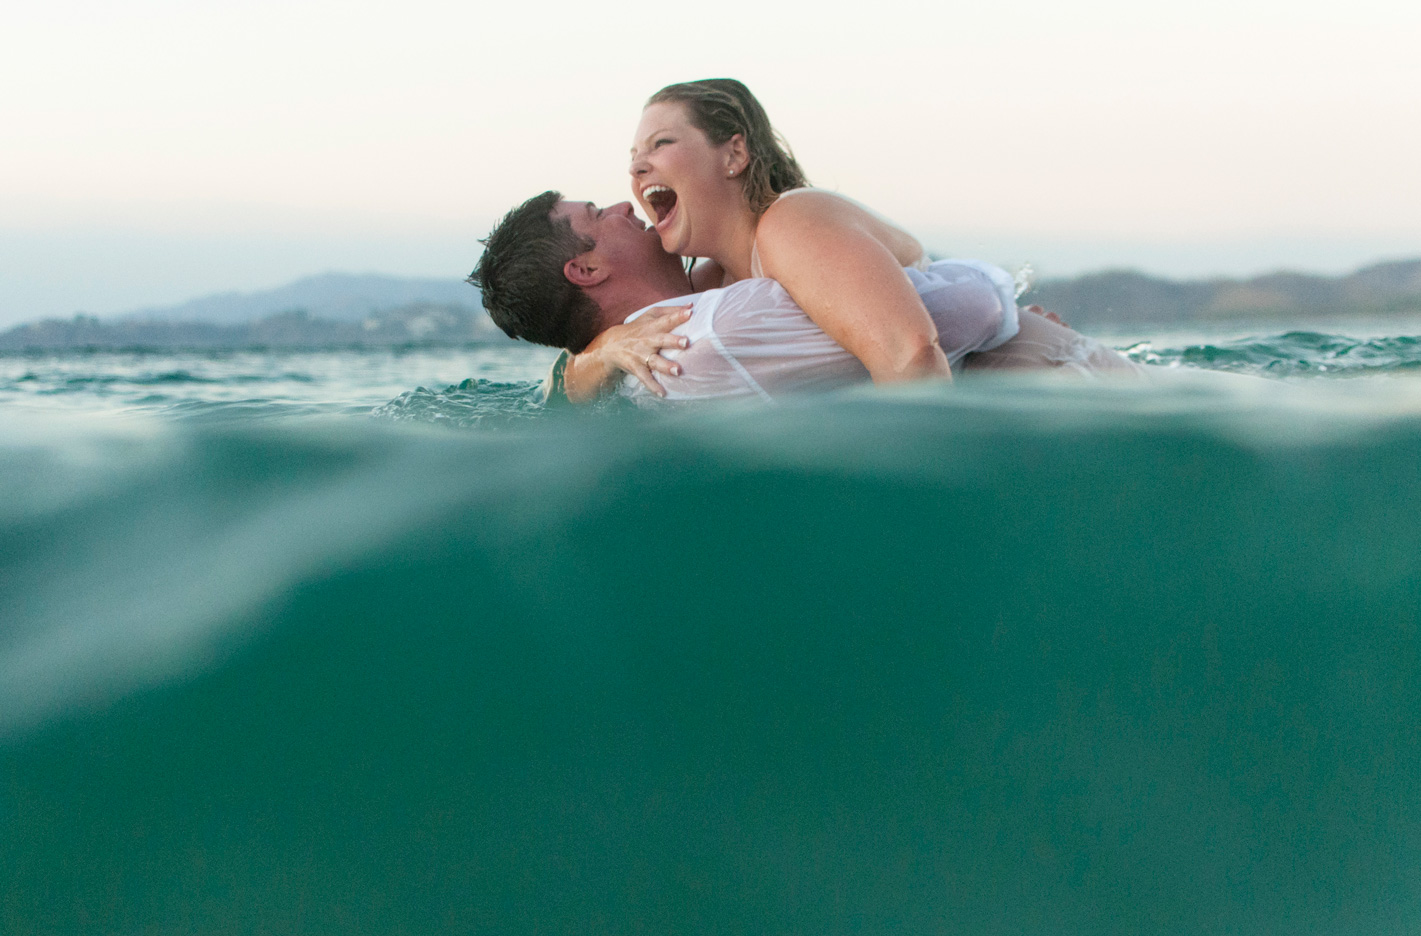 Bride and groom laughing in the ocean during trash the dress photos in Playa Conchal, Costa Rica. Photographed by Kristen M. Brown, Samba to the Sea Photography.